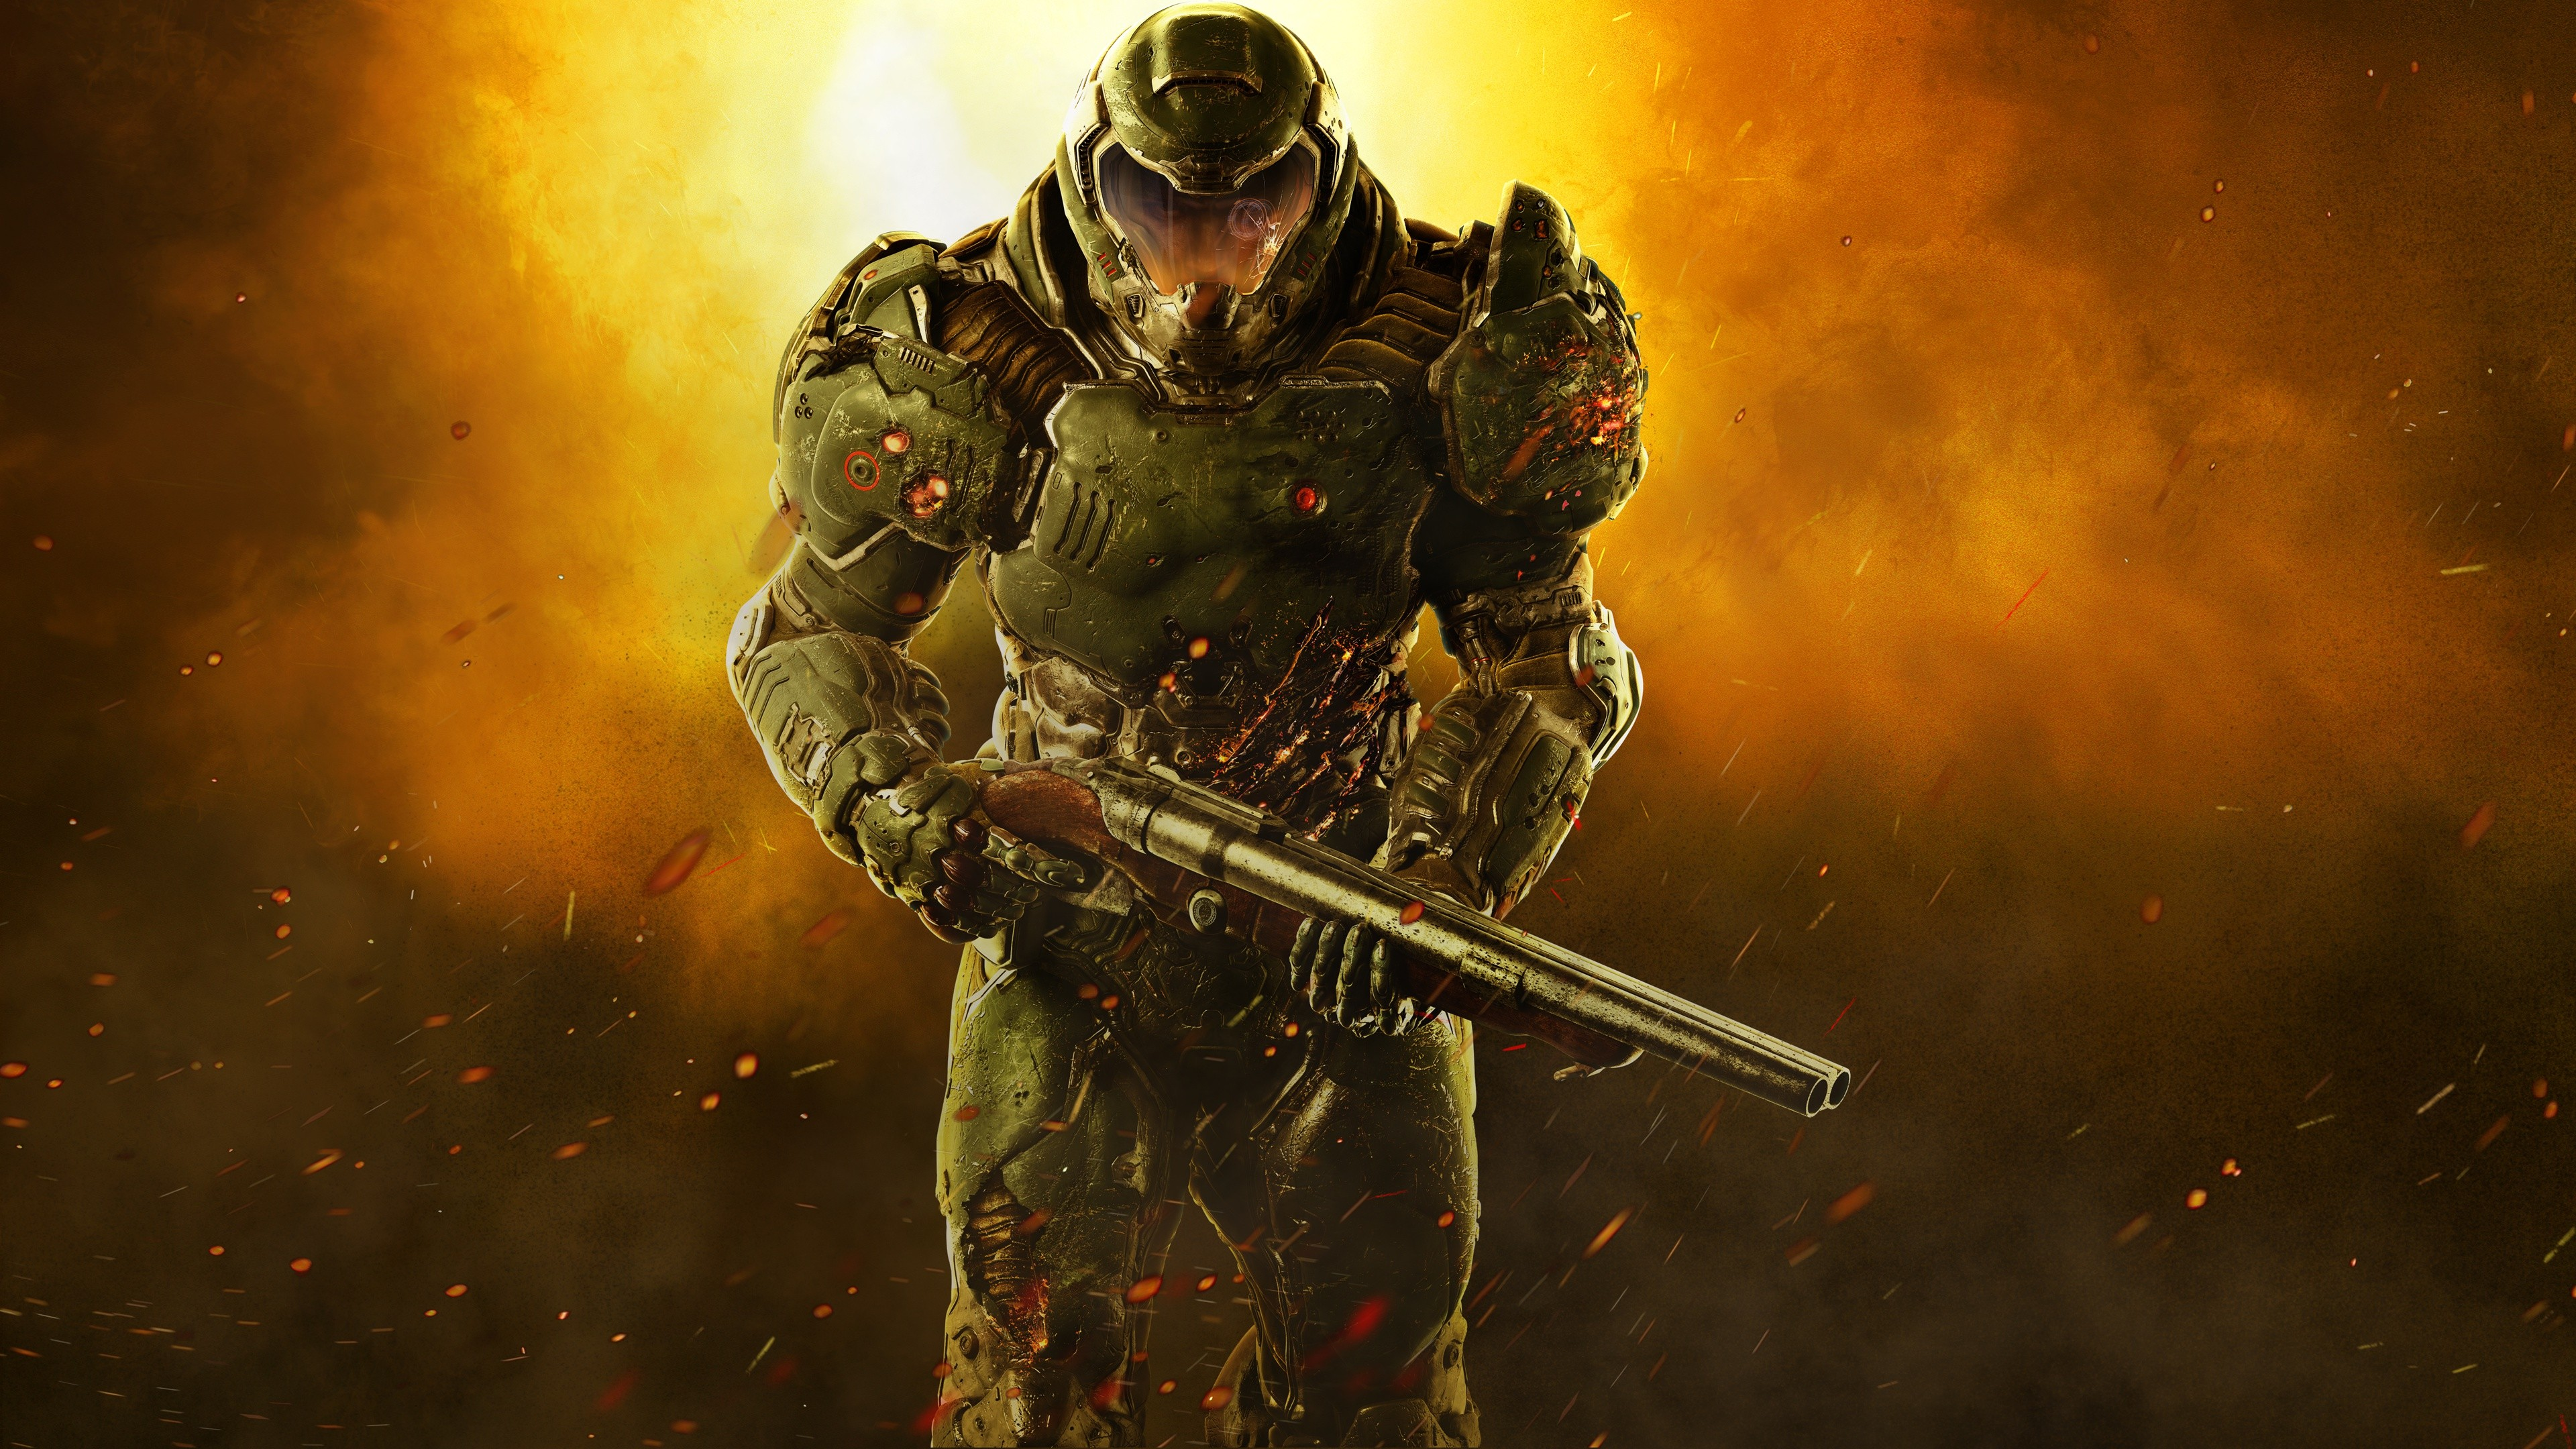 doom 2016 wallpapers pictures images